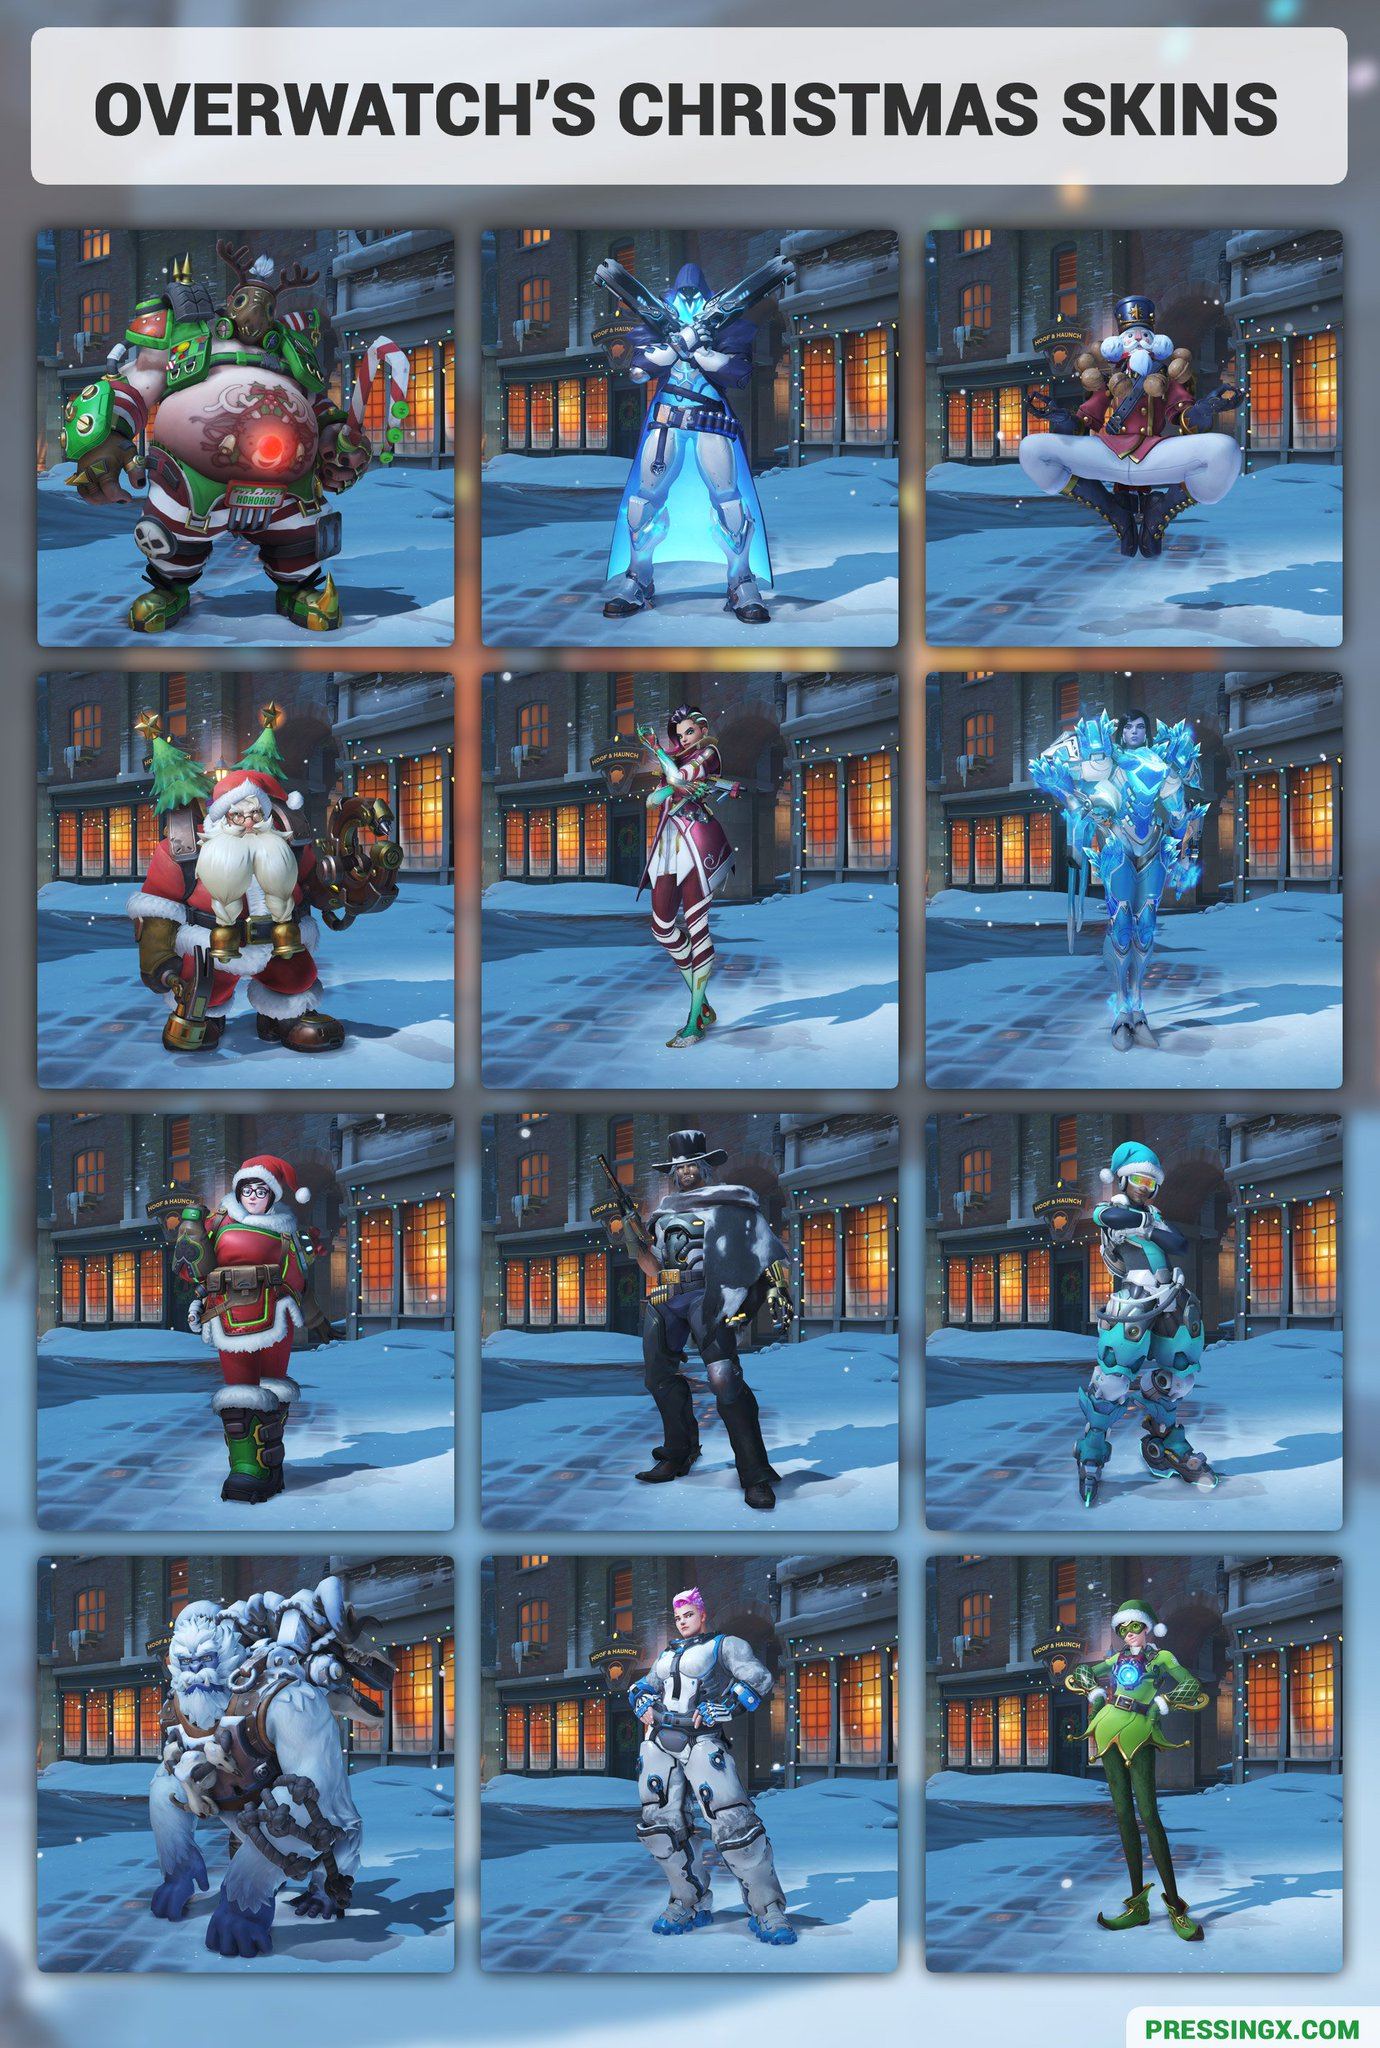 Overwatch Christmas Skins 2021 Pressing X On Twitter Here S All Of The New Overwatch Christmas Skins In One Image